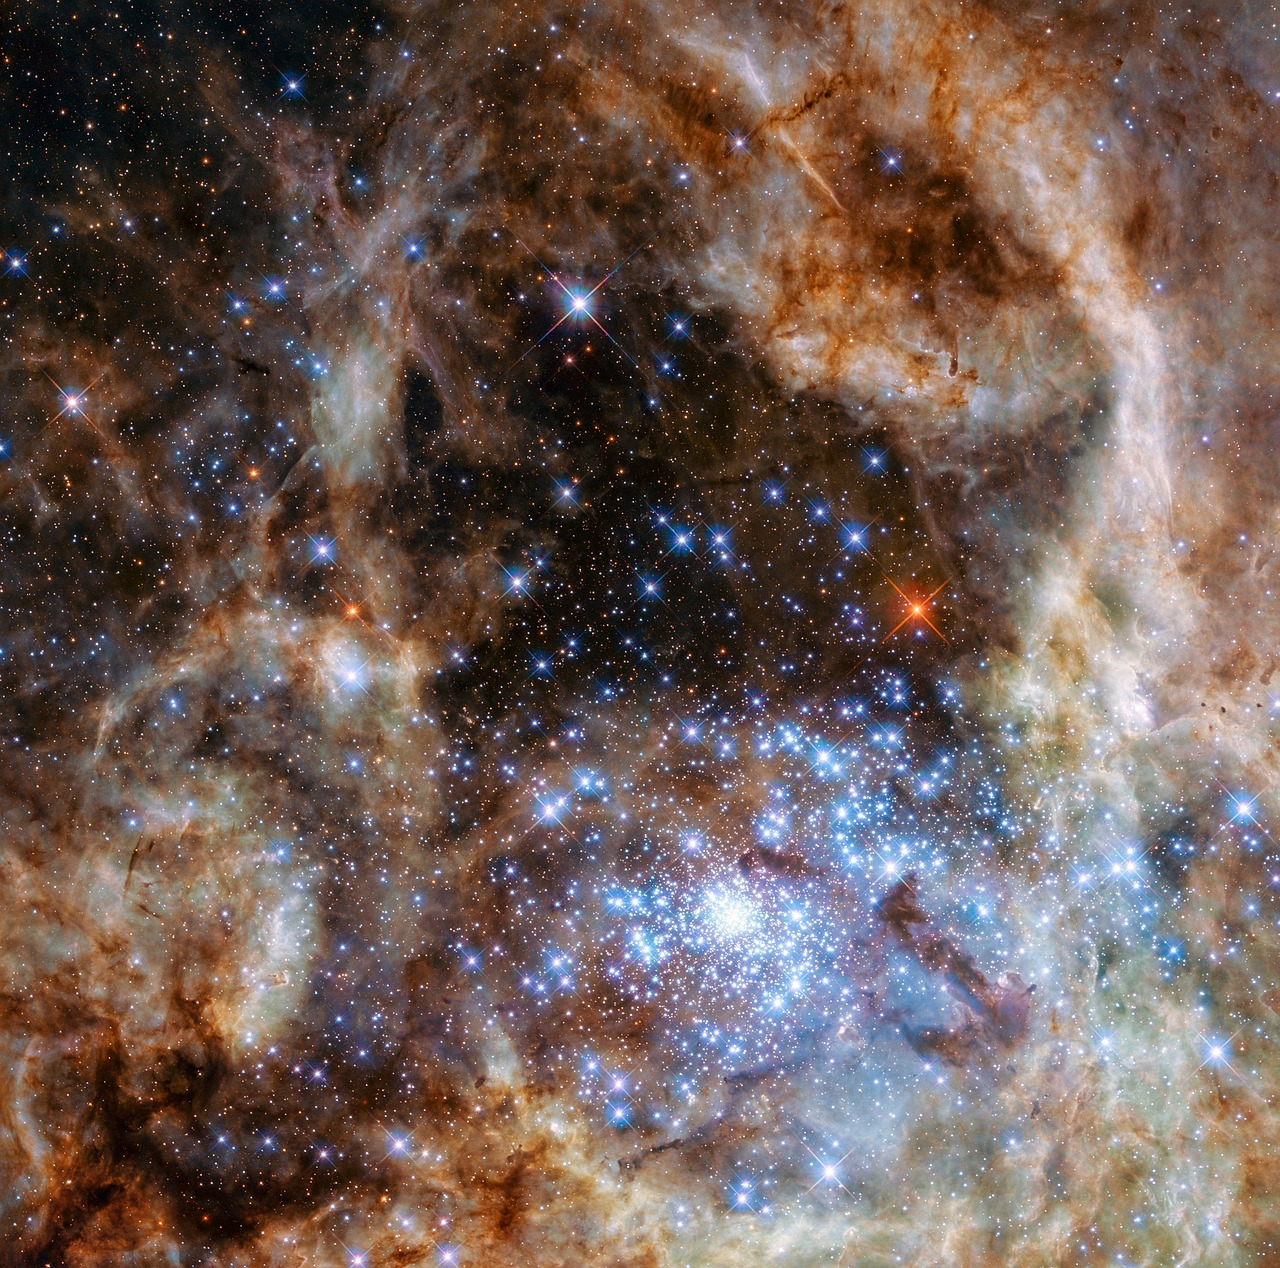 Here we can see the Tarantula Nebula, a part of the LMC where star formation is booming.